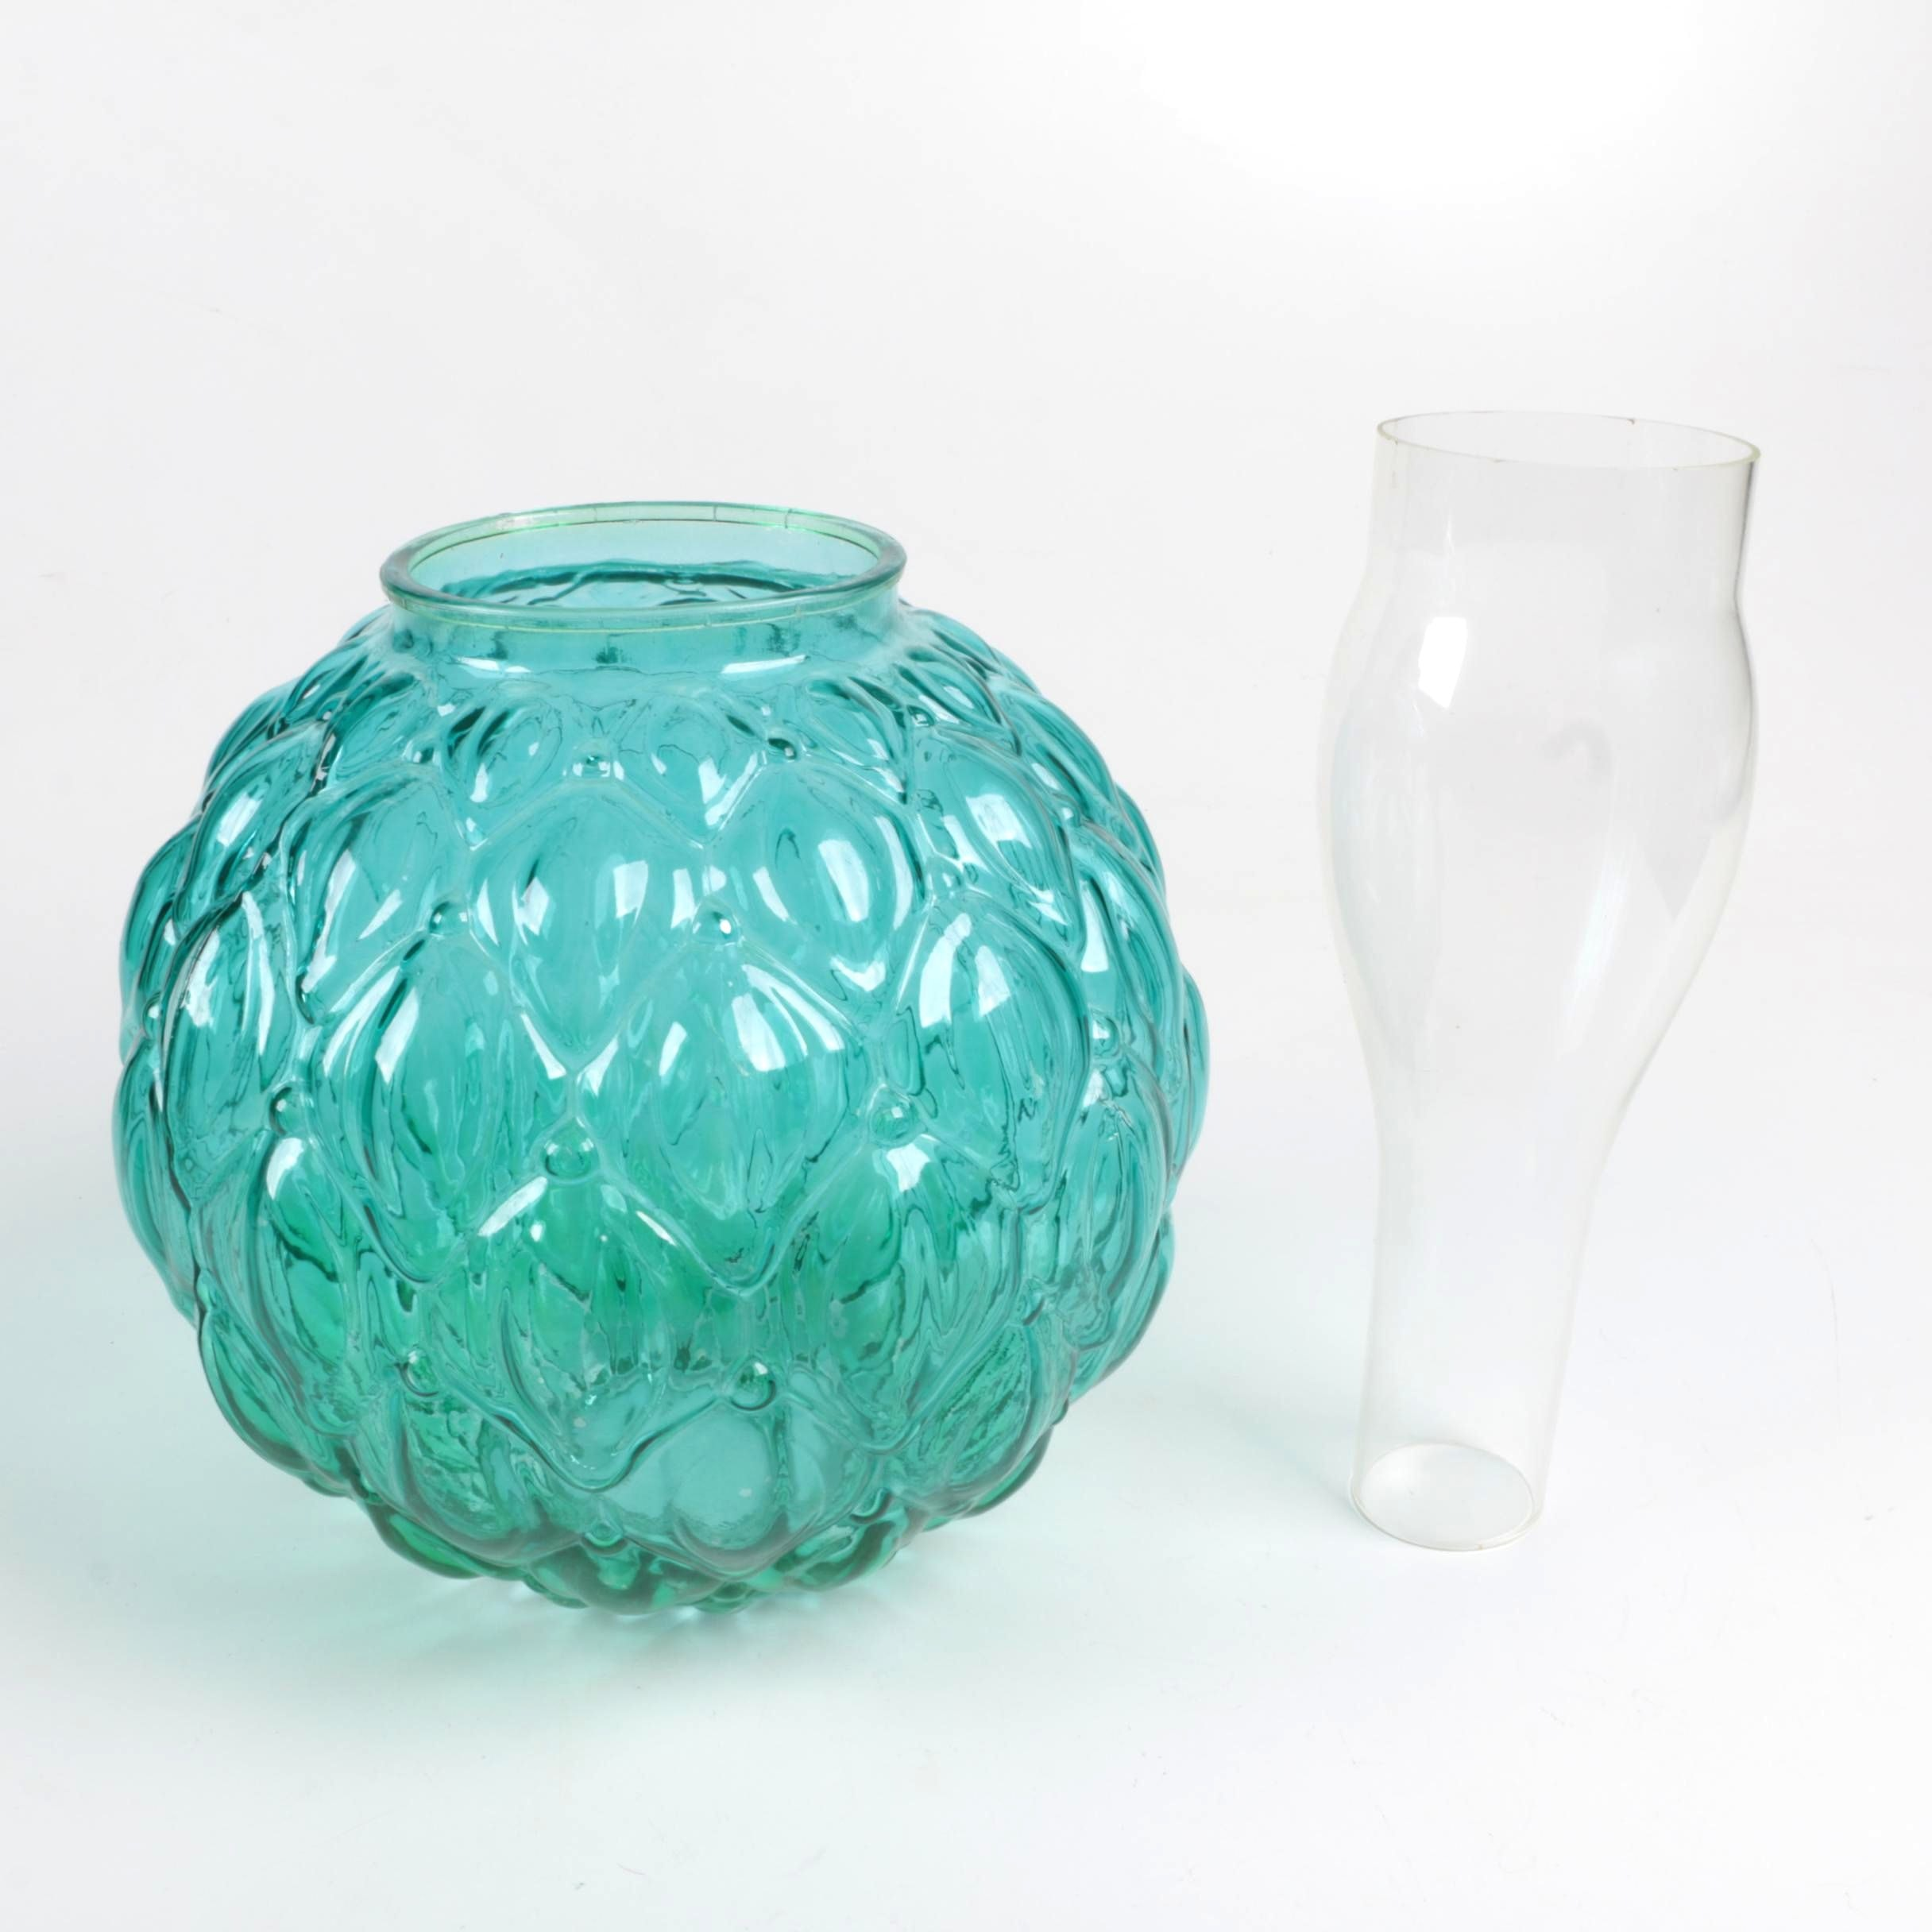 Green Glass Sphere and Vase